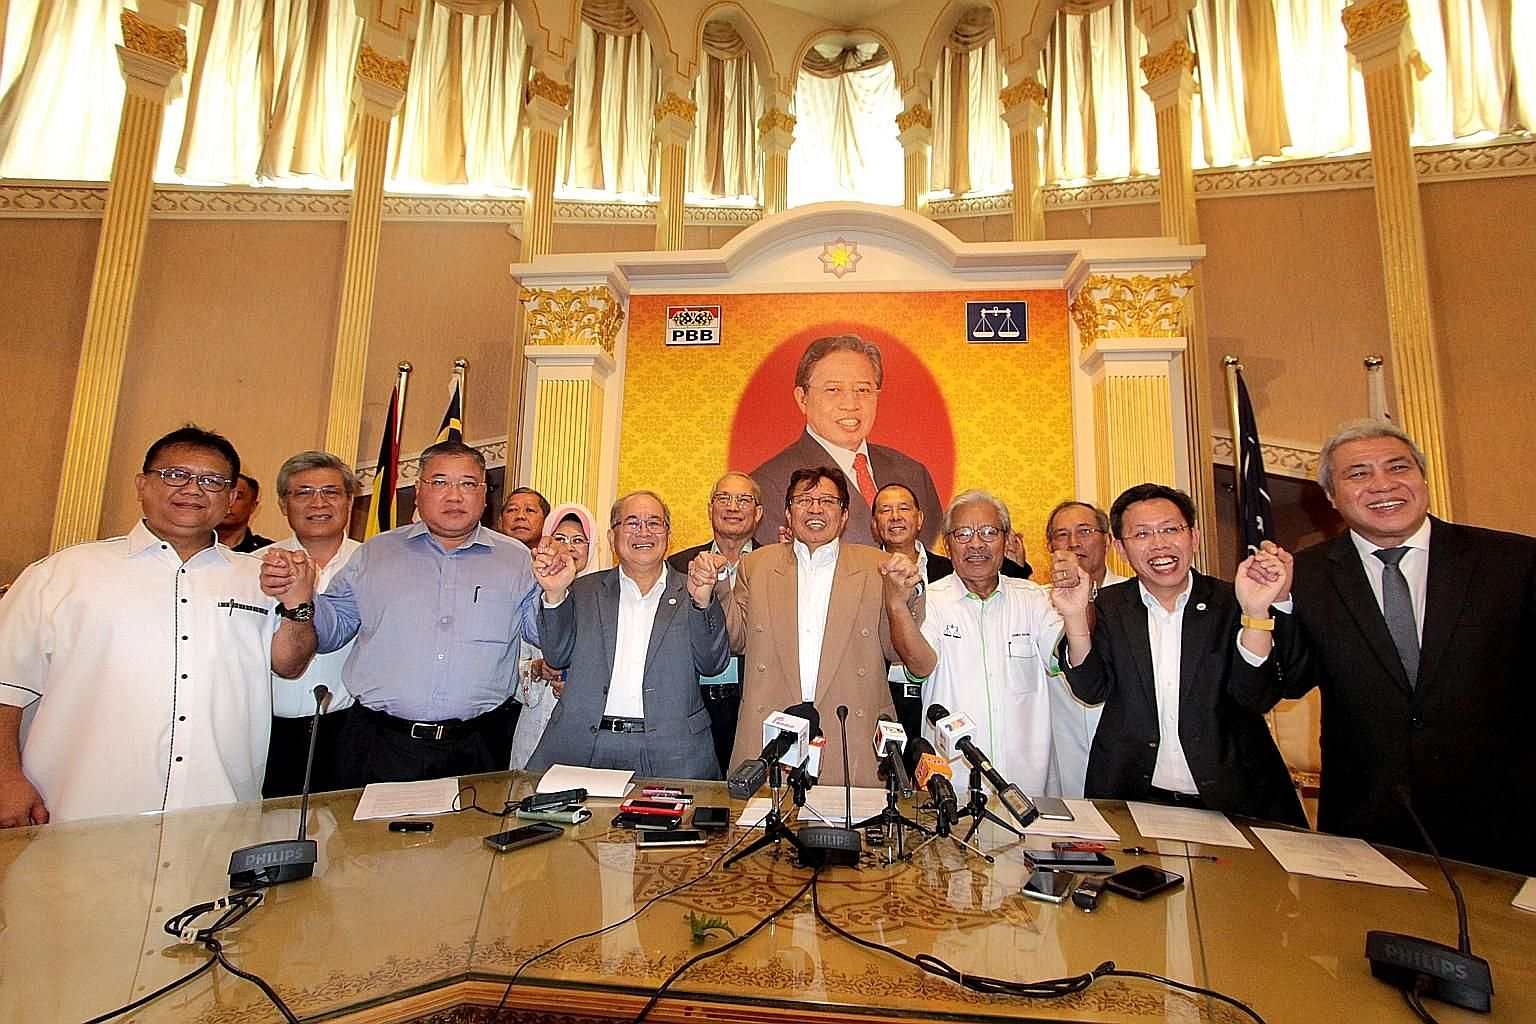 Leaders of the four Sarawak parties that have decided to leave BN include PBB president Abang Johari Tun Openg (centre, in brown jacket), PBB deputy president Douglas Uggah Embas (in grey jacket), and PRS president James Masing (in white shirt).